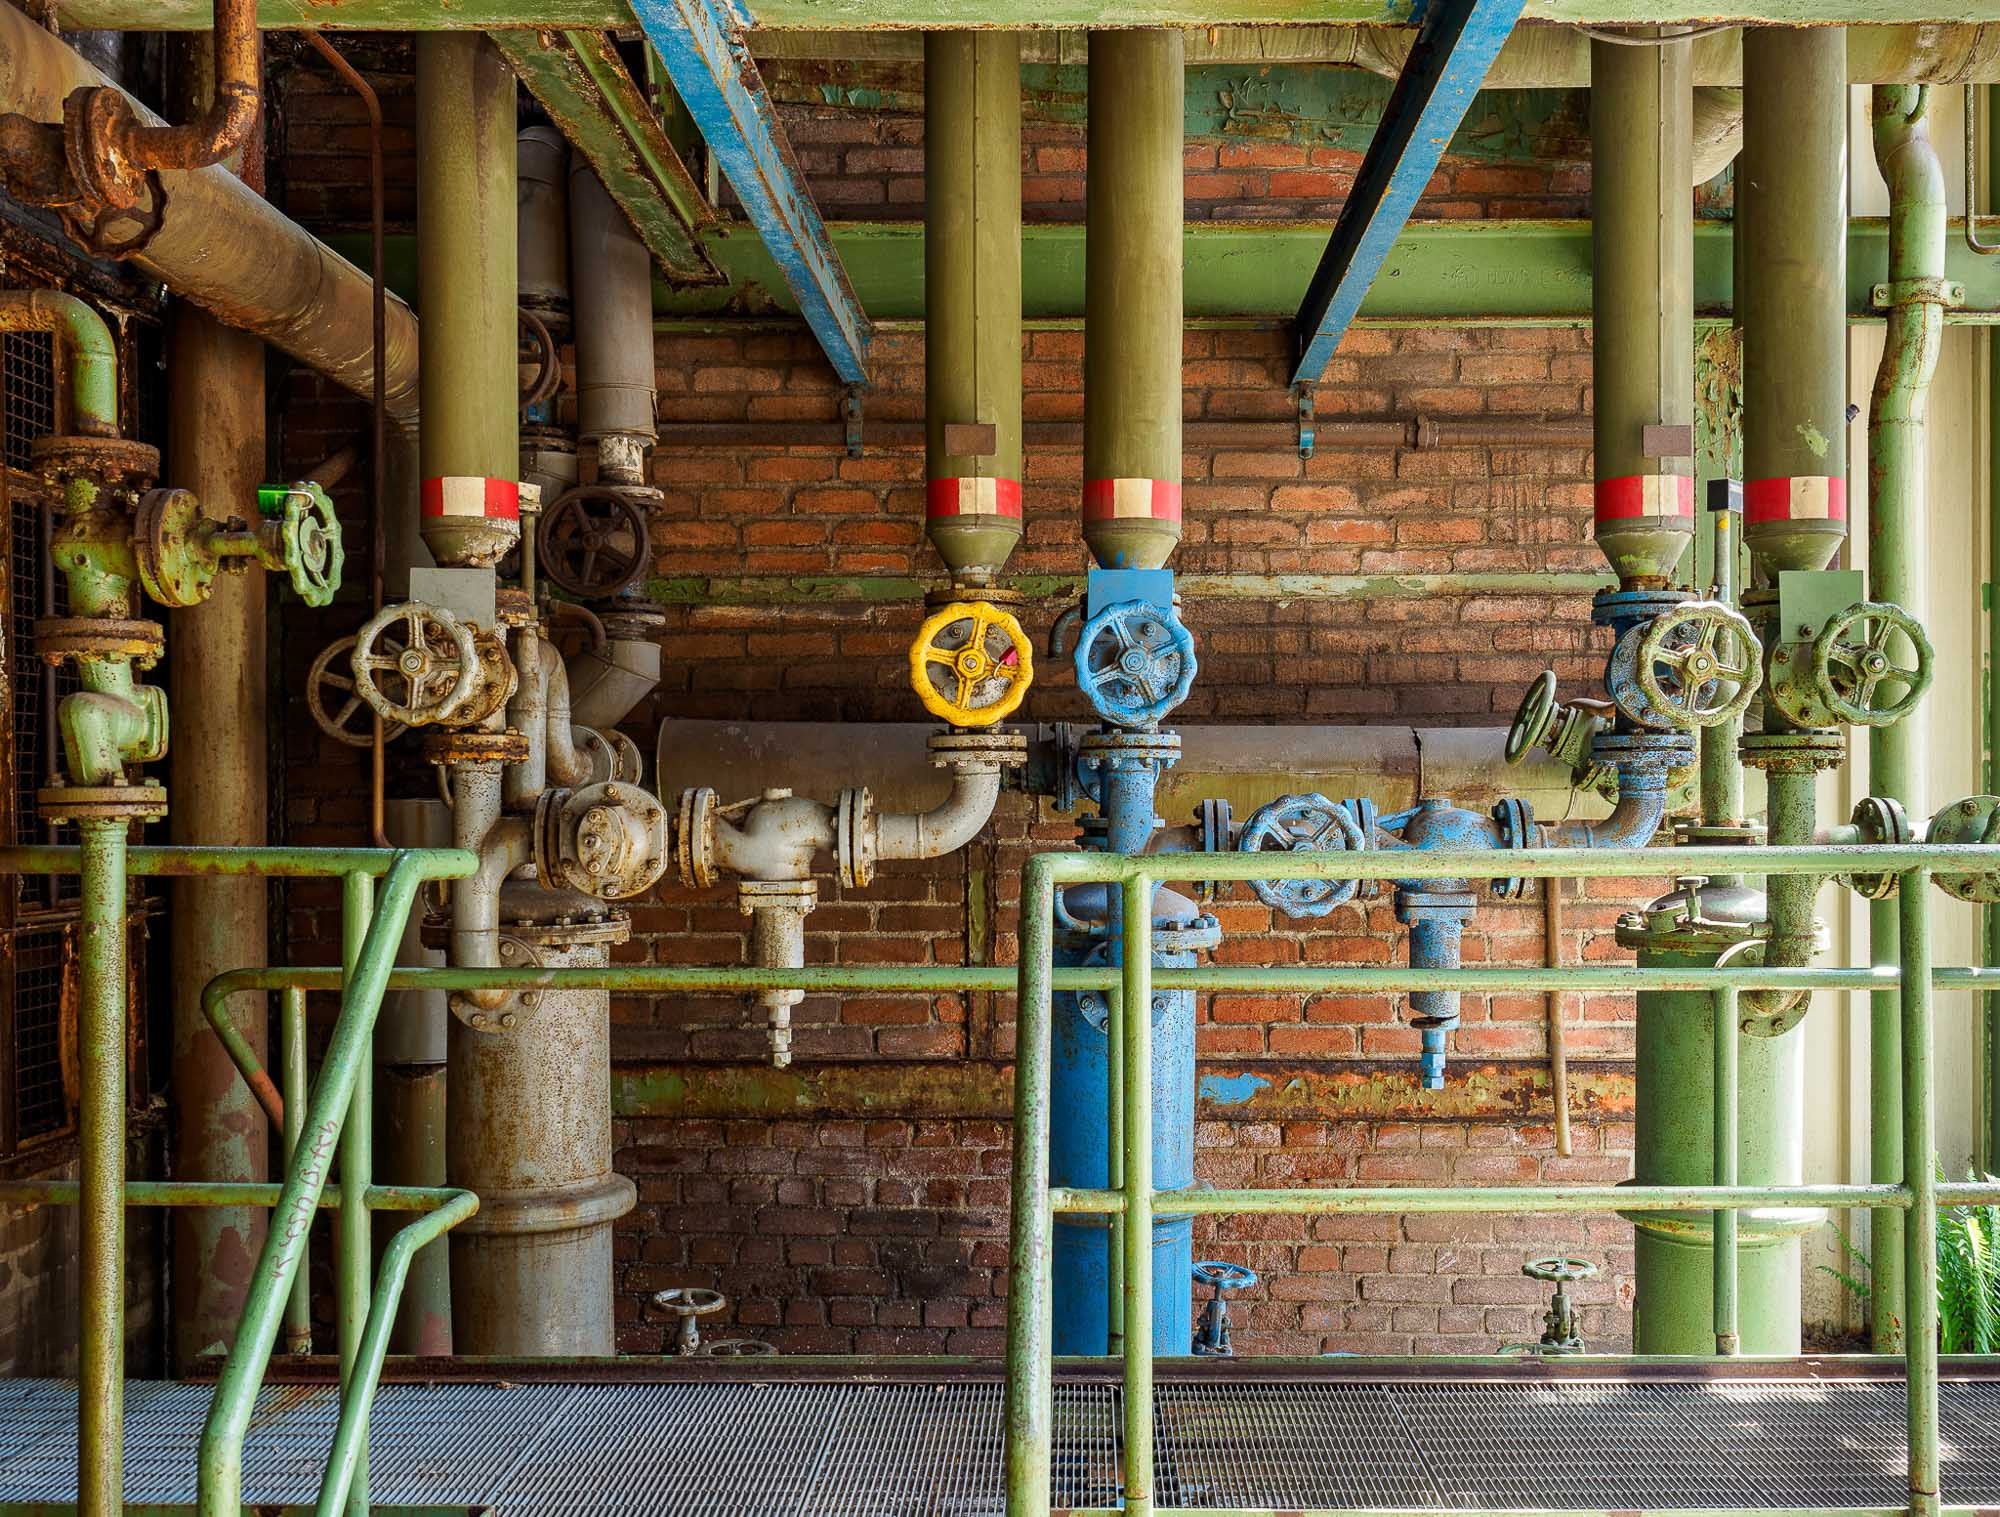 Pipes (but no teapot)